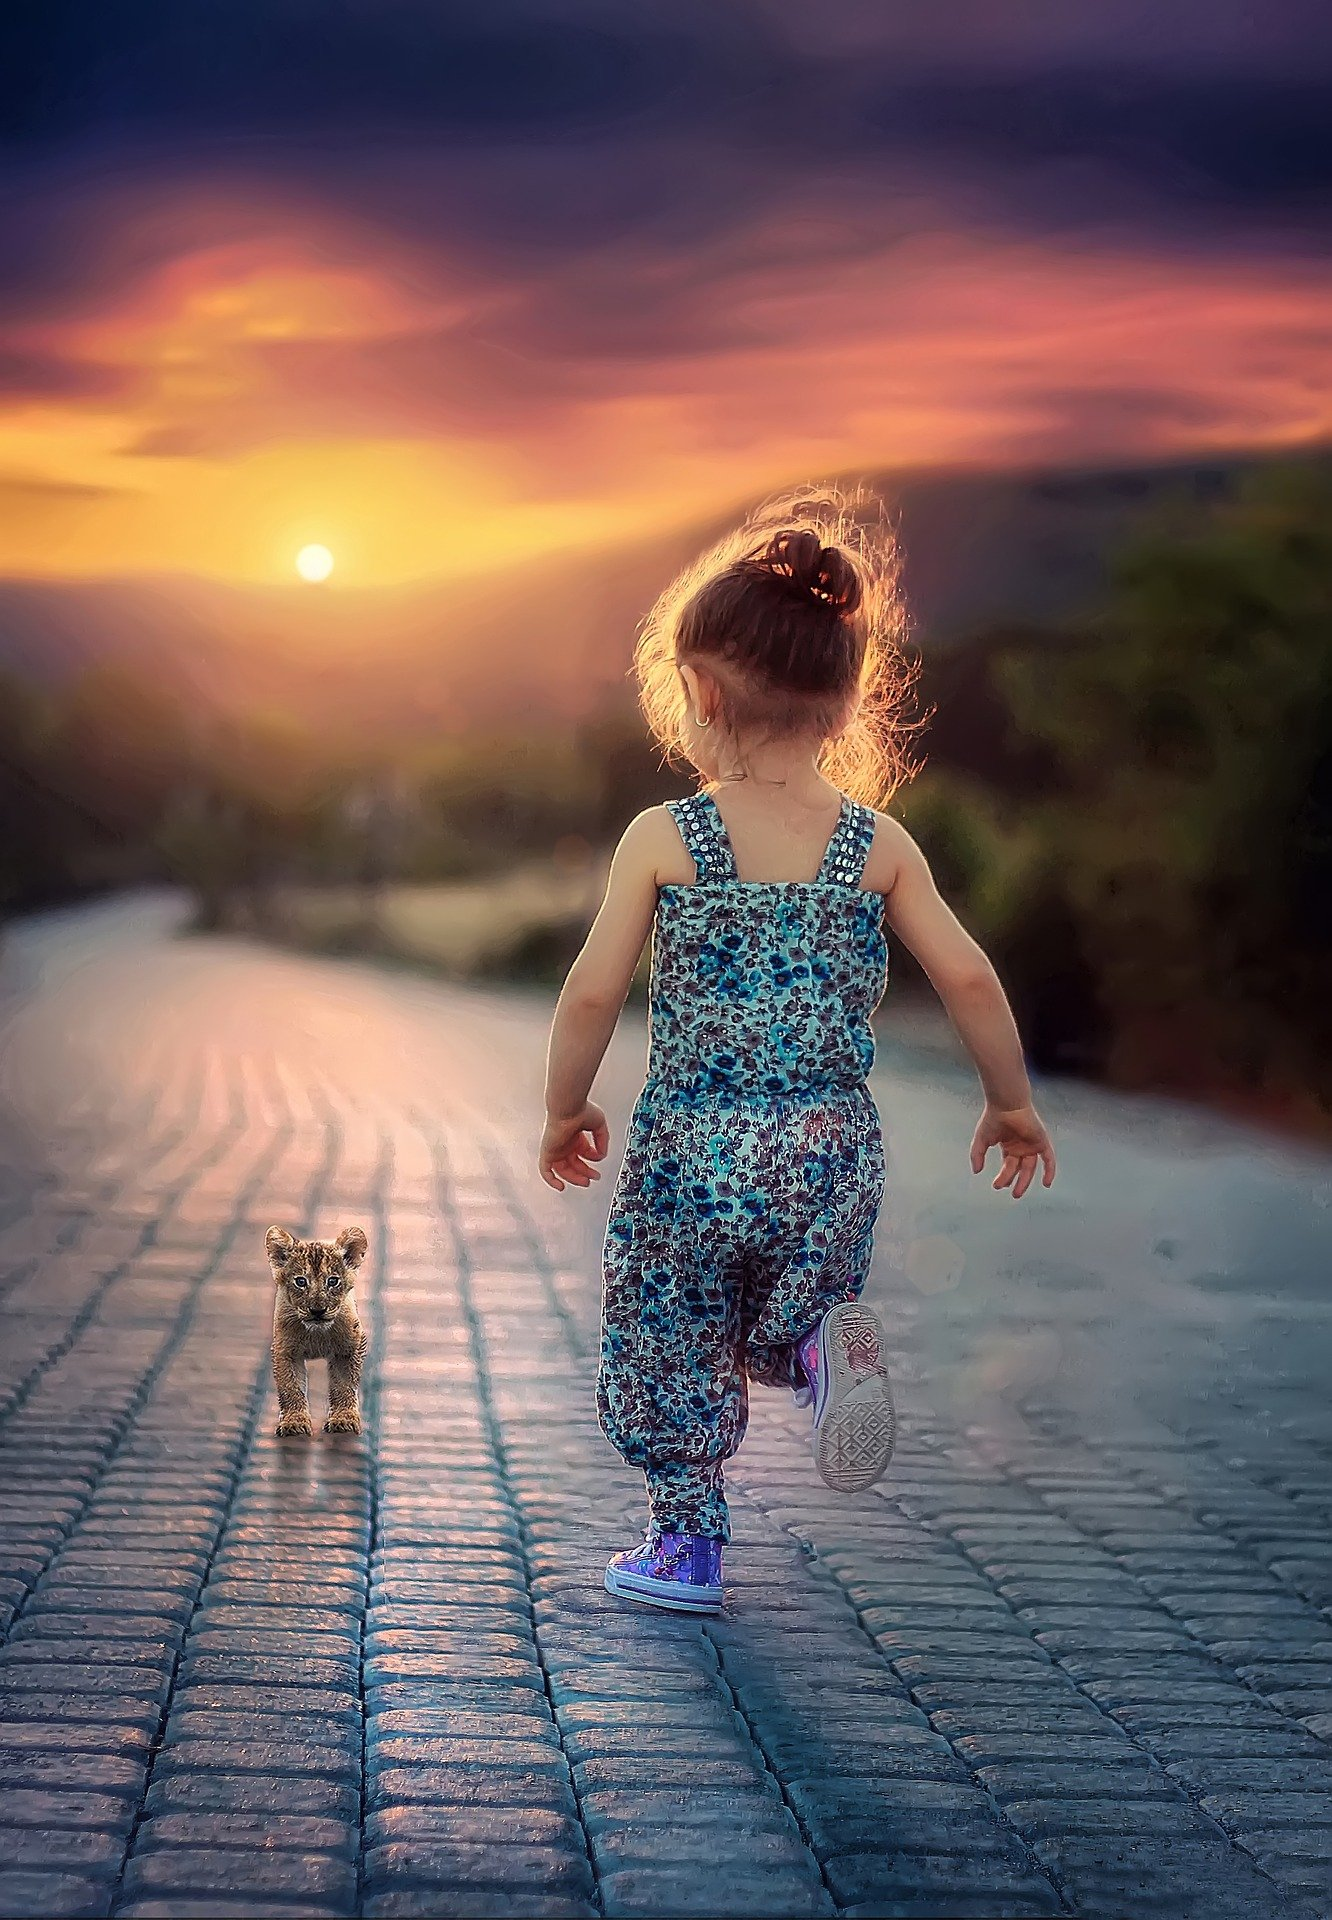 Choosing The Best Pet For Your Kids